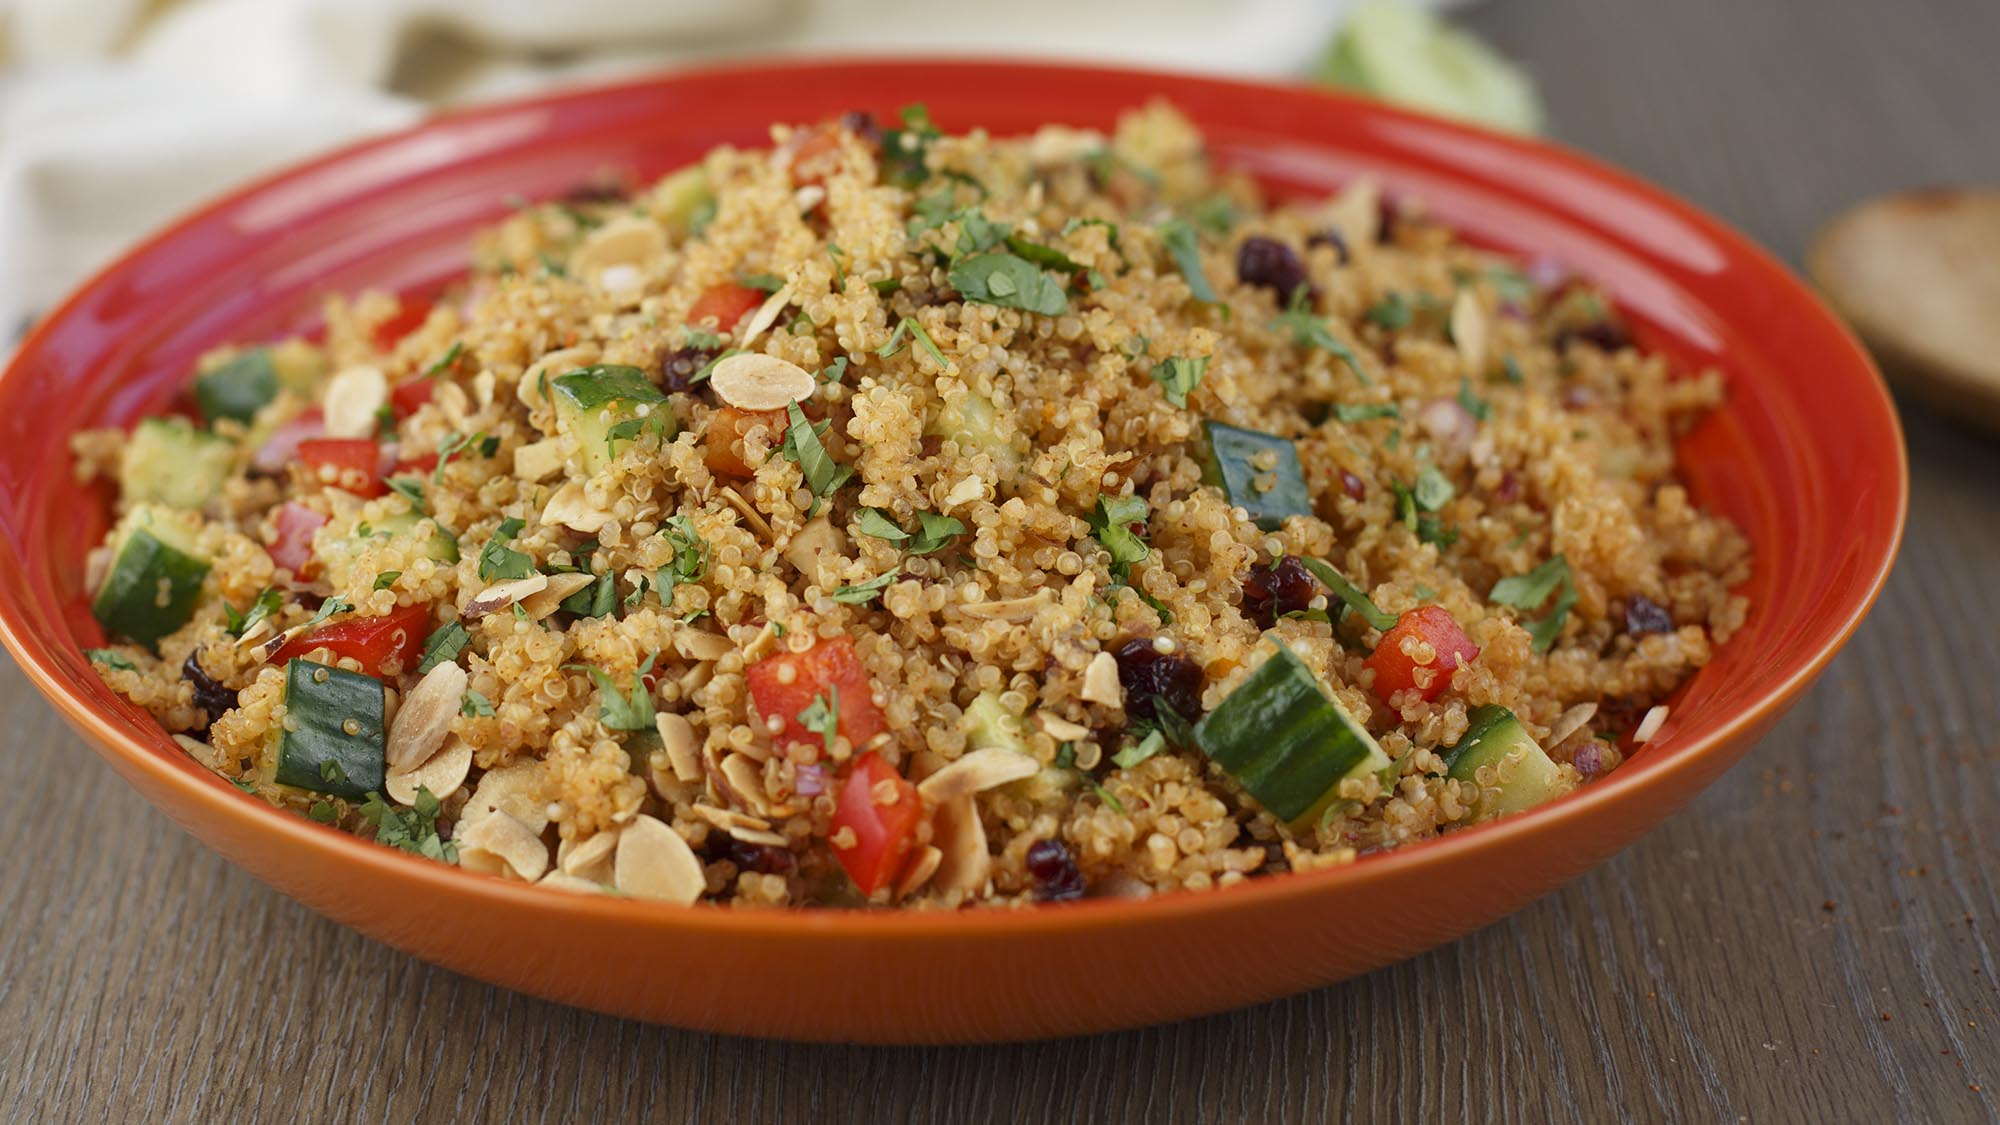 McCormick Quinoa Salad with Cherry and Almonds